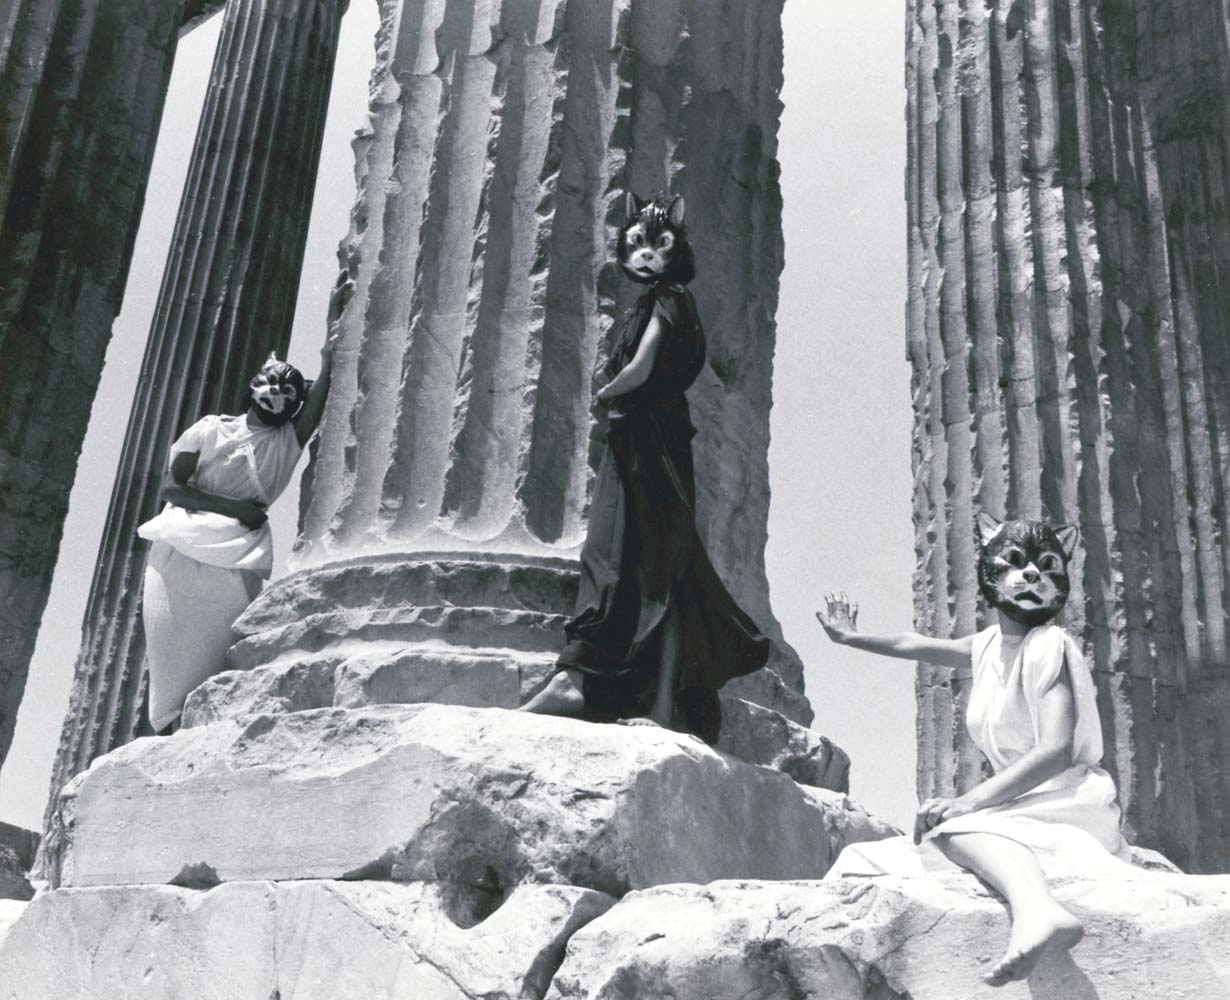 Great Goddesses: Do You Have a Light?,  1978, Performance Tableau, Athens, Greece